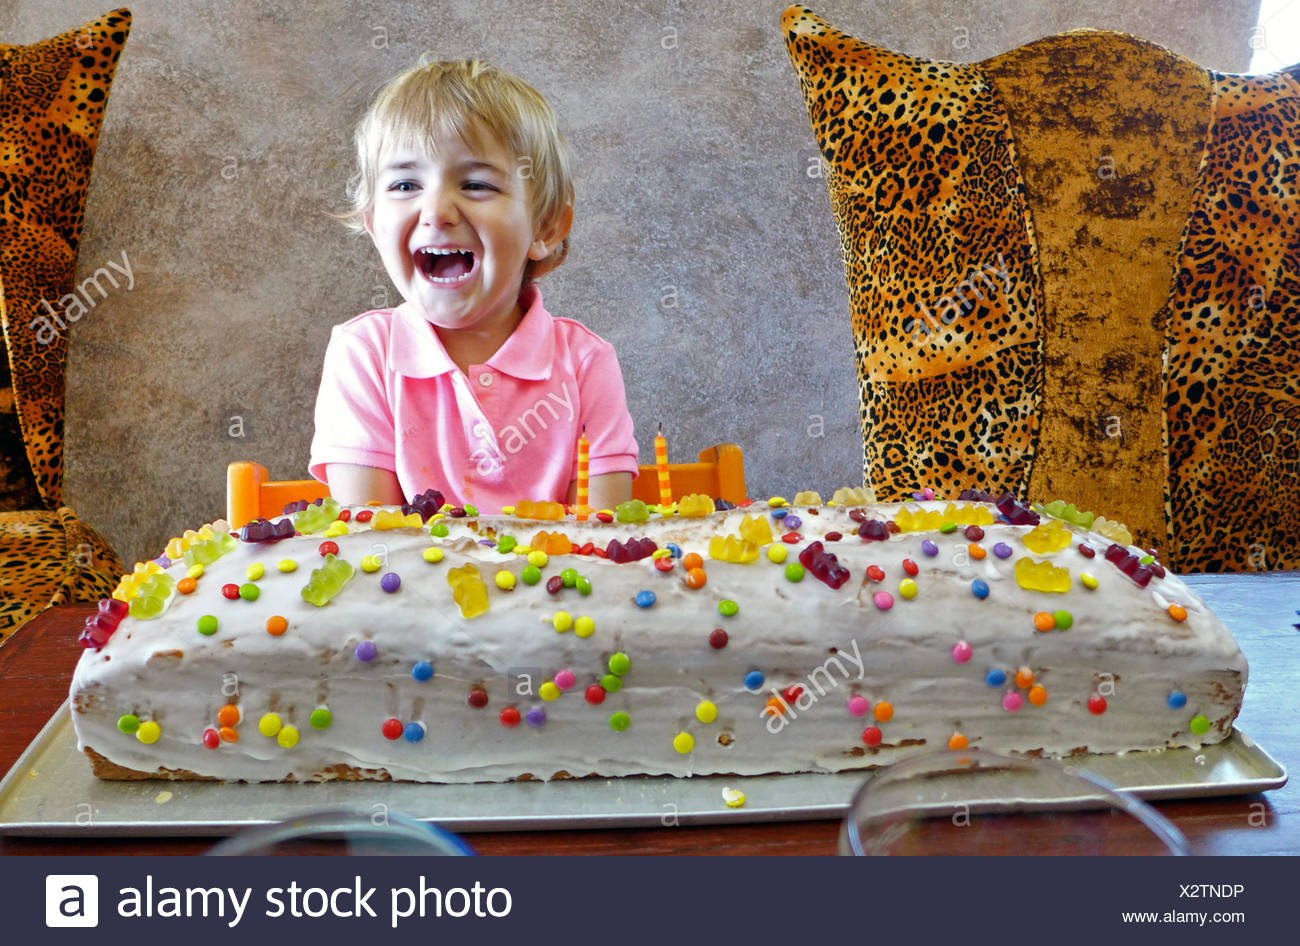 Terrific Little Boy With Giant Birthday Cake Stock Photo 277138898 Alamy Funny Birthday Cards Online Fluifree Goldxyz